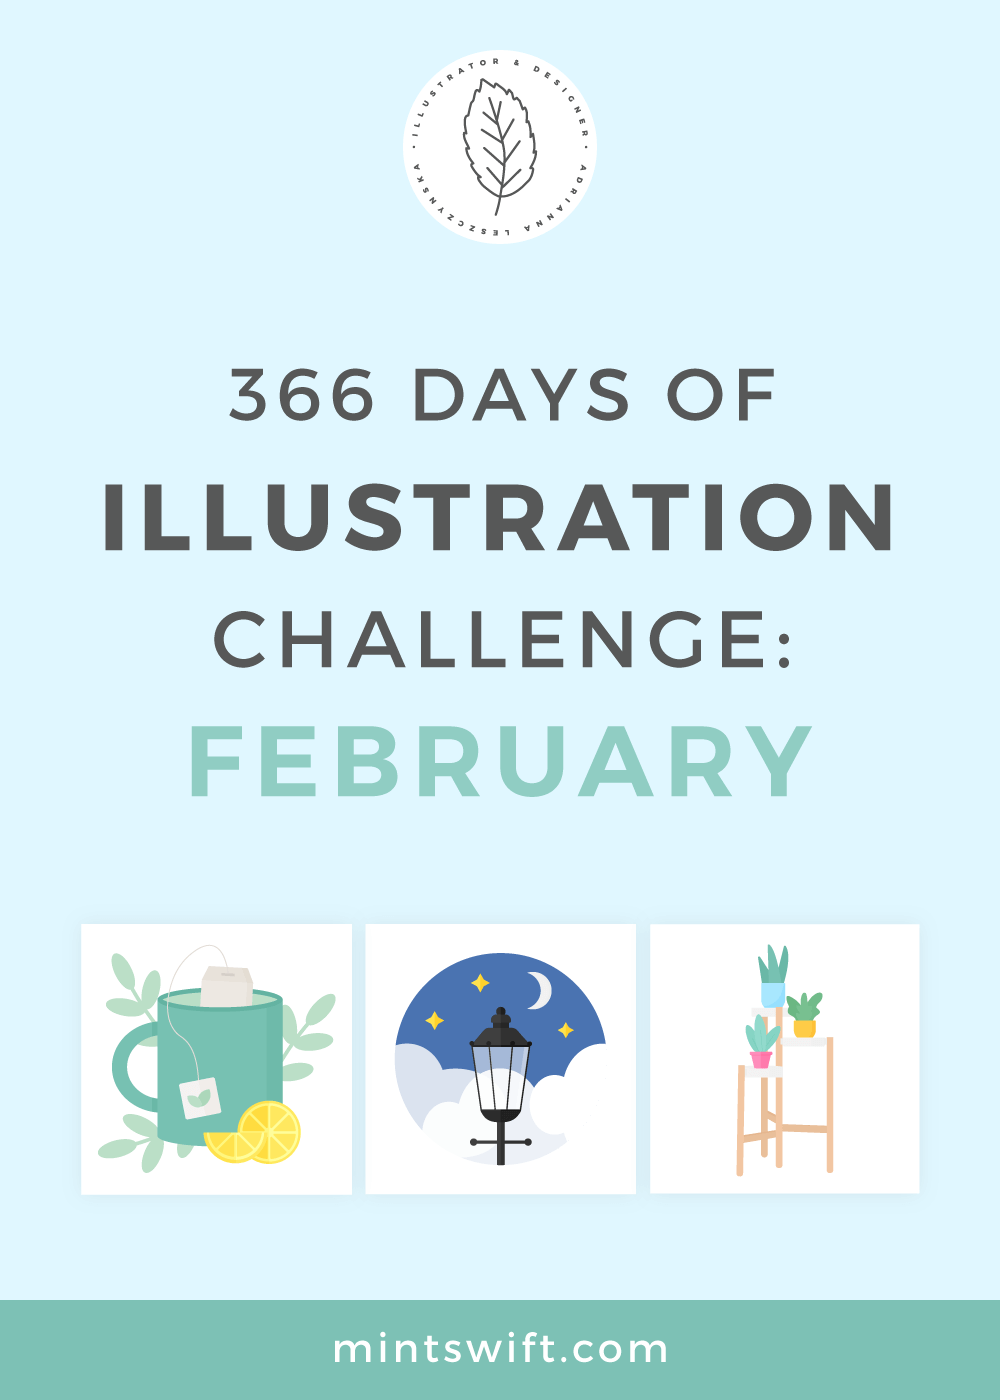 The second month (February) of 366 Days of Illustration Challenge by MintSwift. 29 vector illustrations in flat design style about nature, London & love